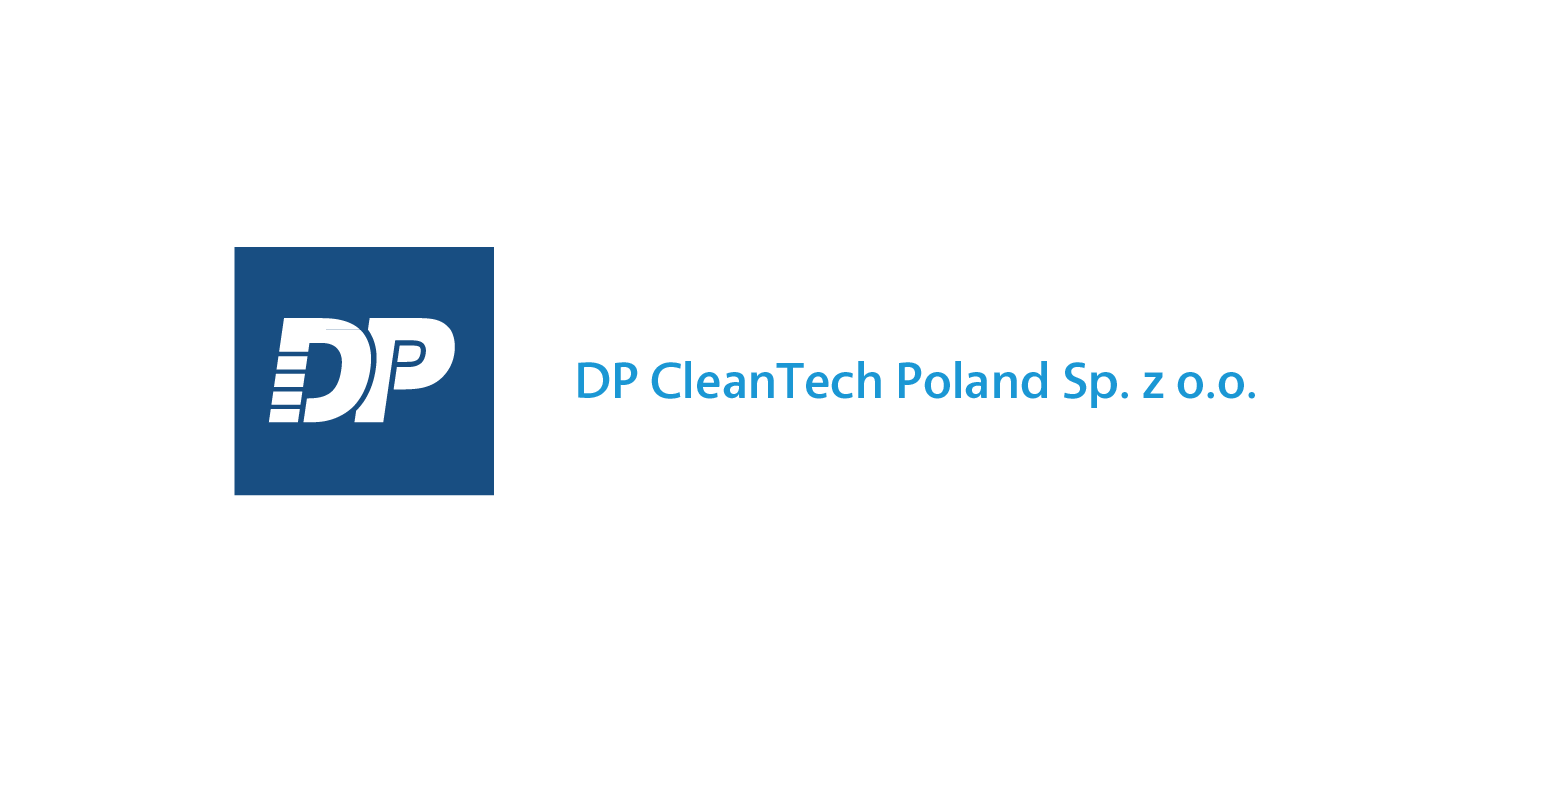 DP CleanTech Poland Partnerem Forum Biomasy